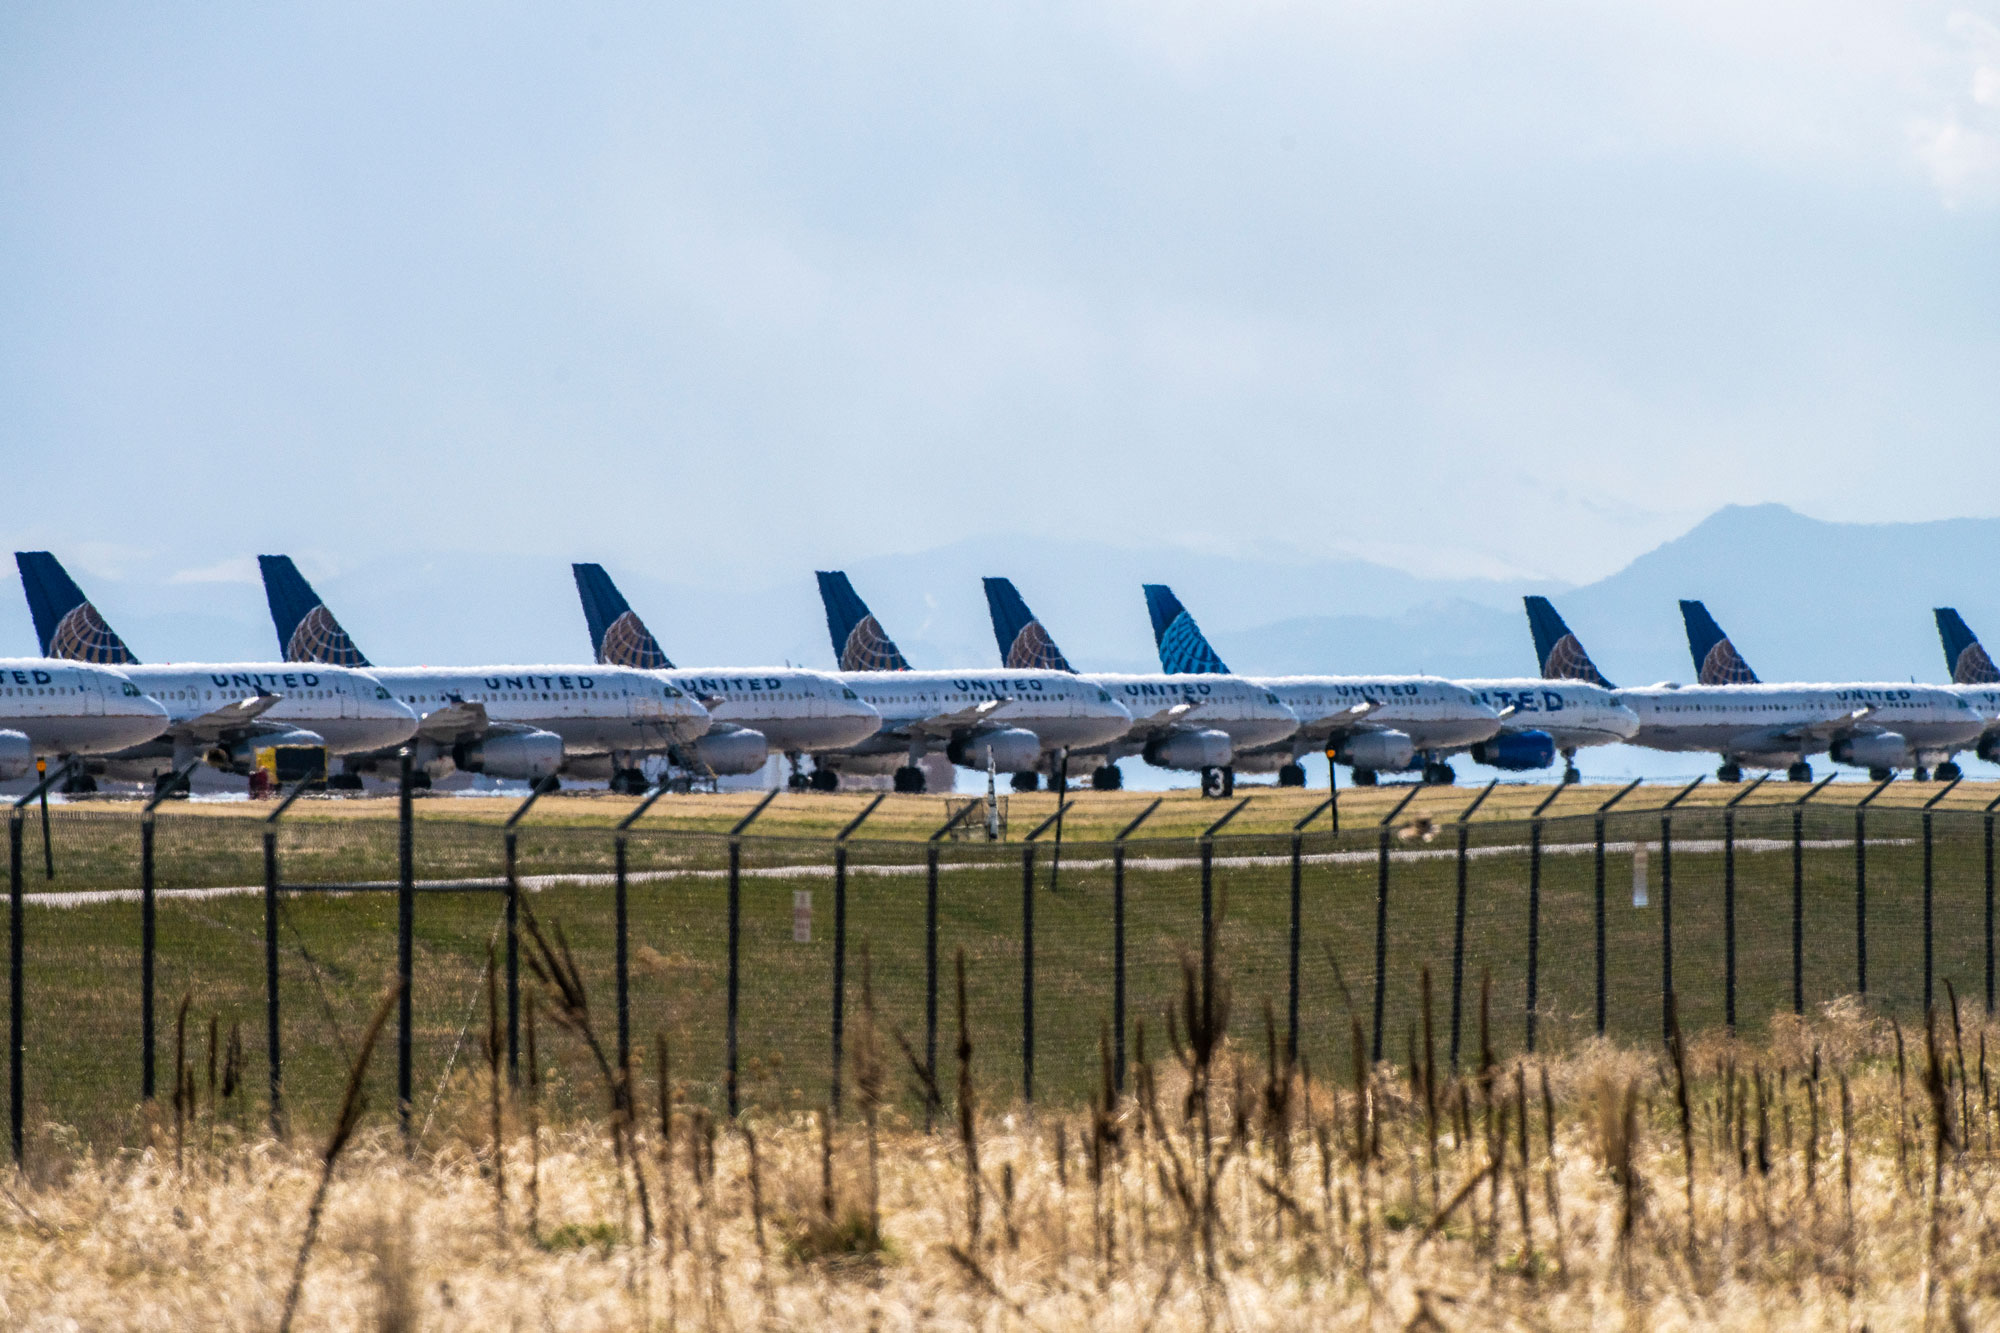 United Airlines planes sit parked on a runway at Denver International Airport as the coronavirus pandemic slows air travel on April 22, in Denver.